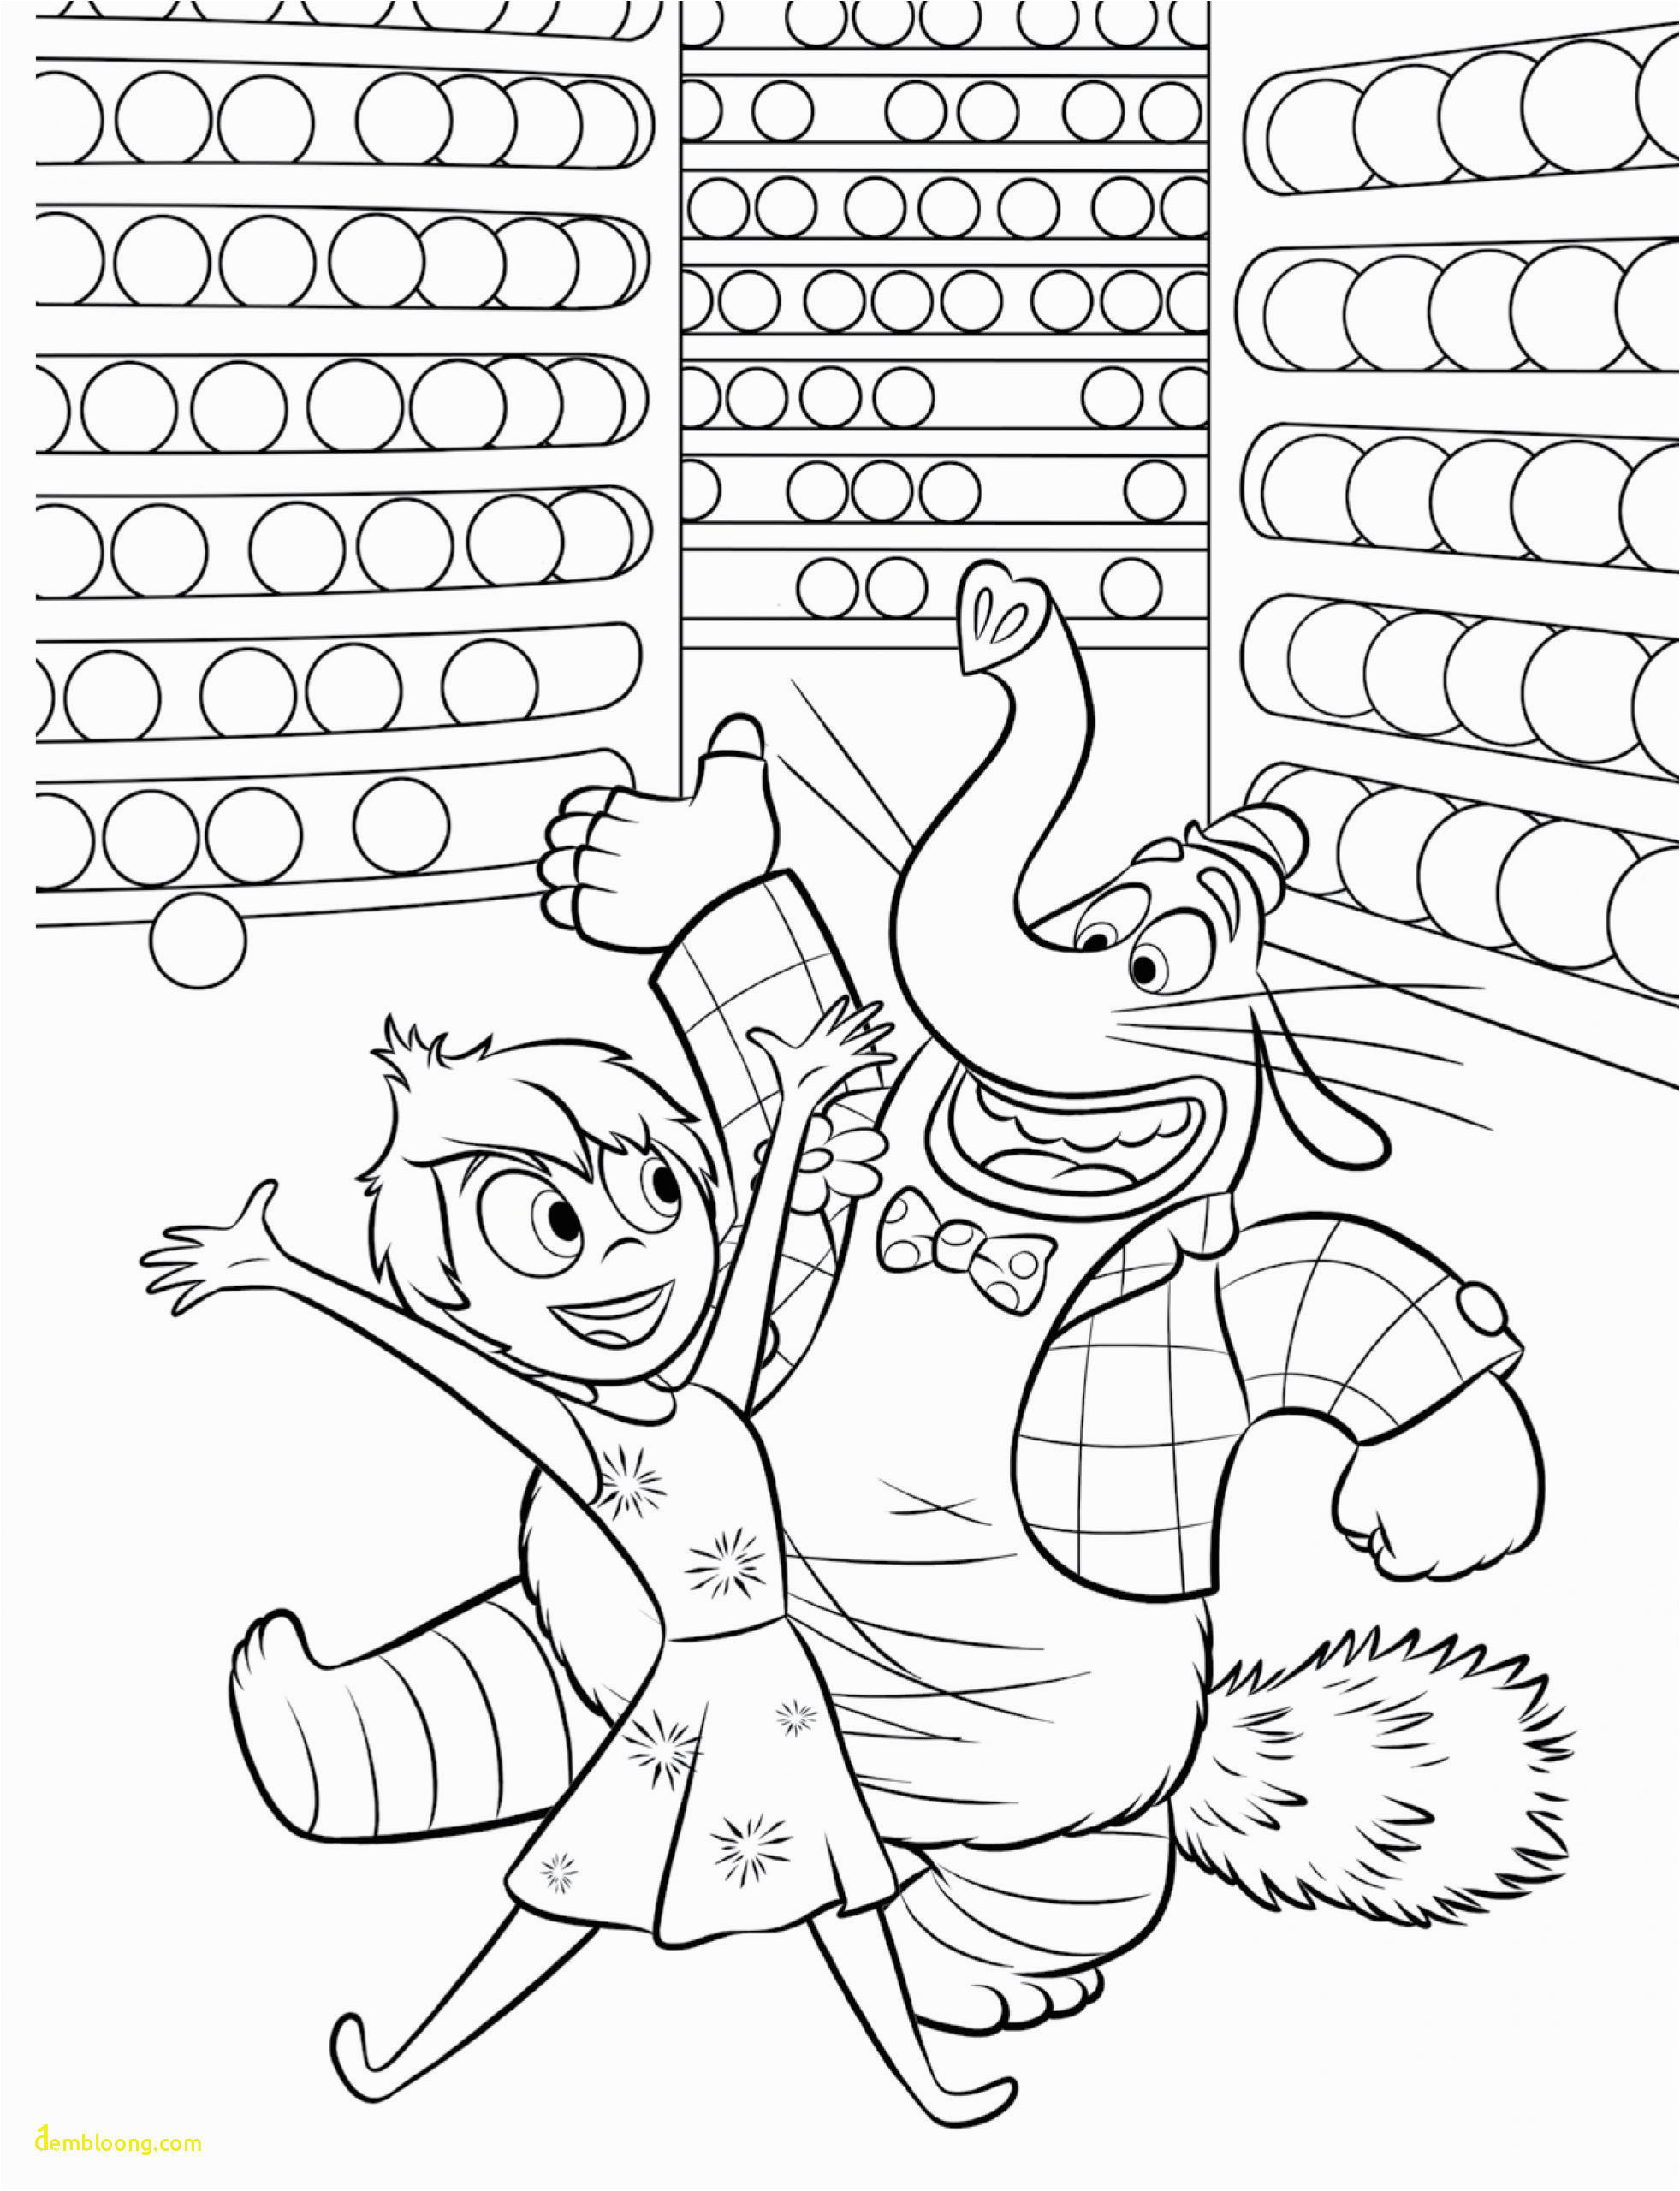 disney coloring sheets for kids new coloring pages printable kitten coloring pages free of disney coloring sheets for kids